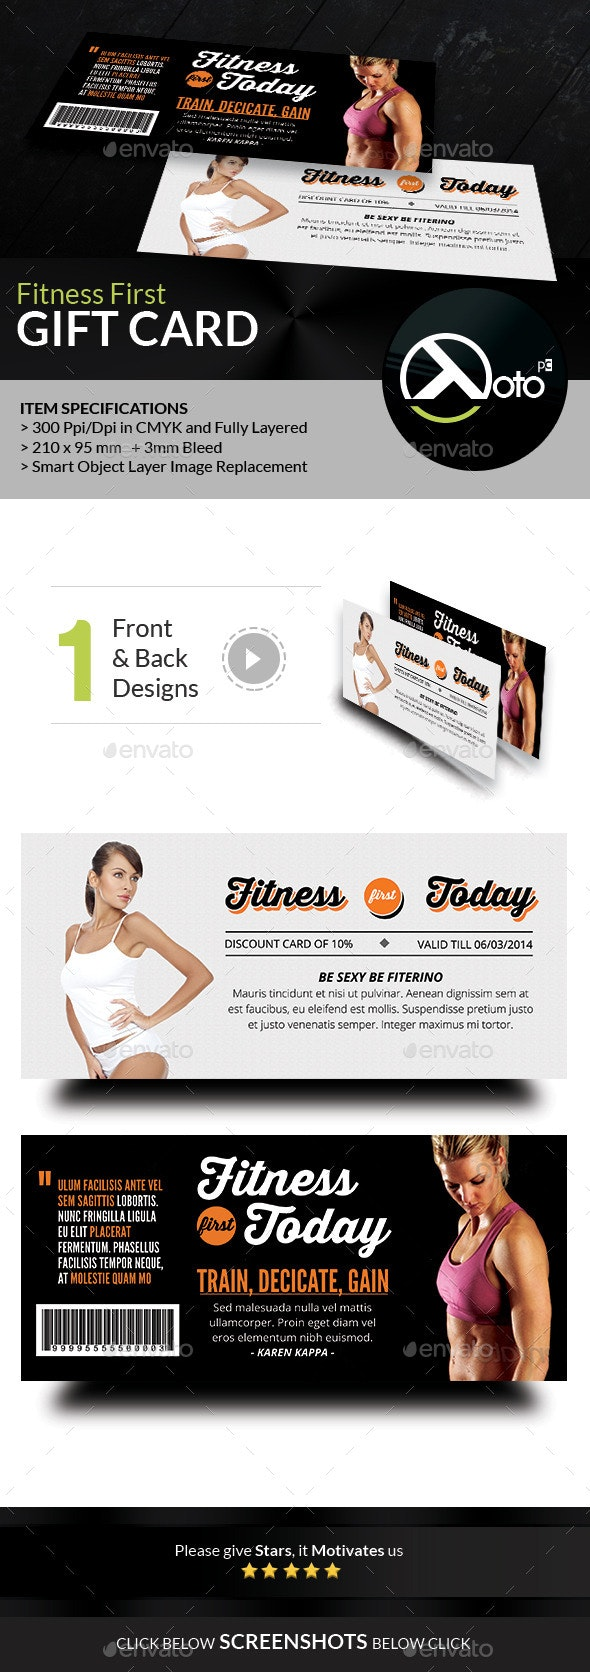 Fitness First Today Health Promotional Gift Voucher - Cards & Invites Print Templates